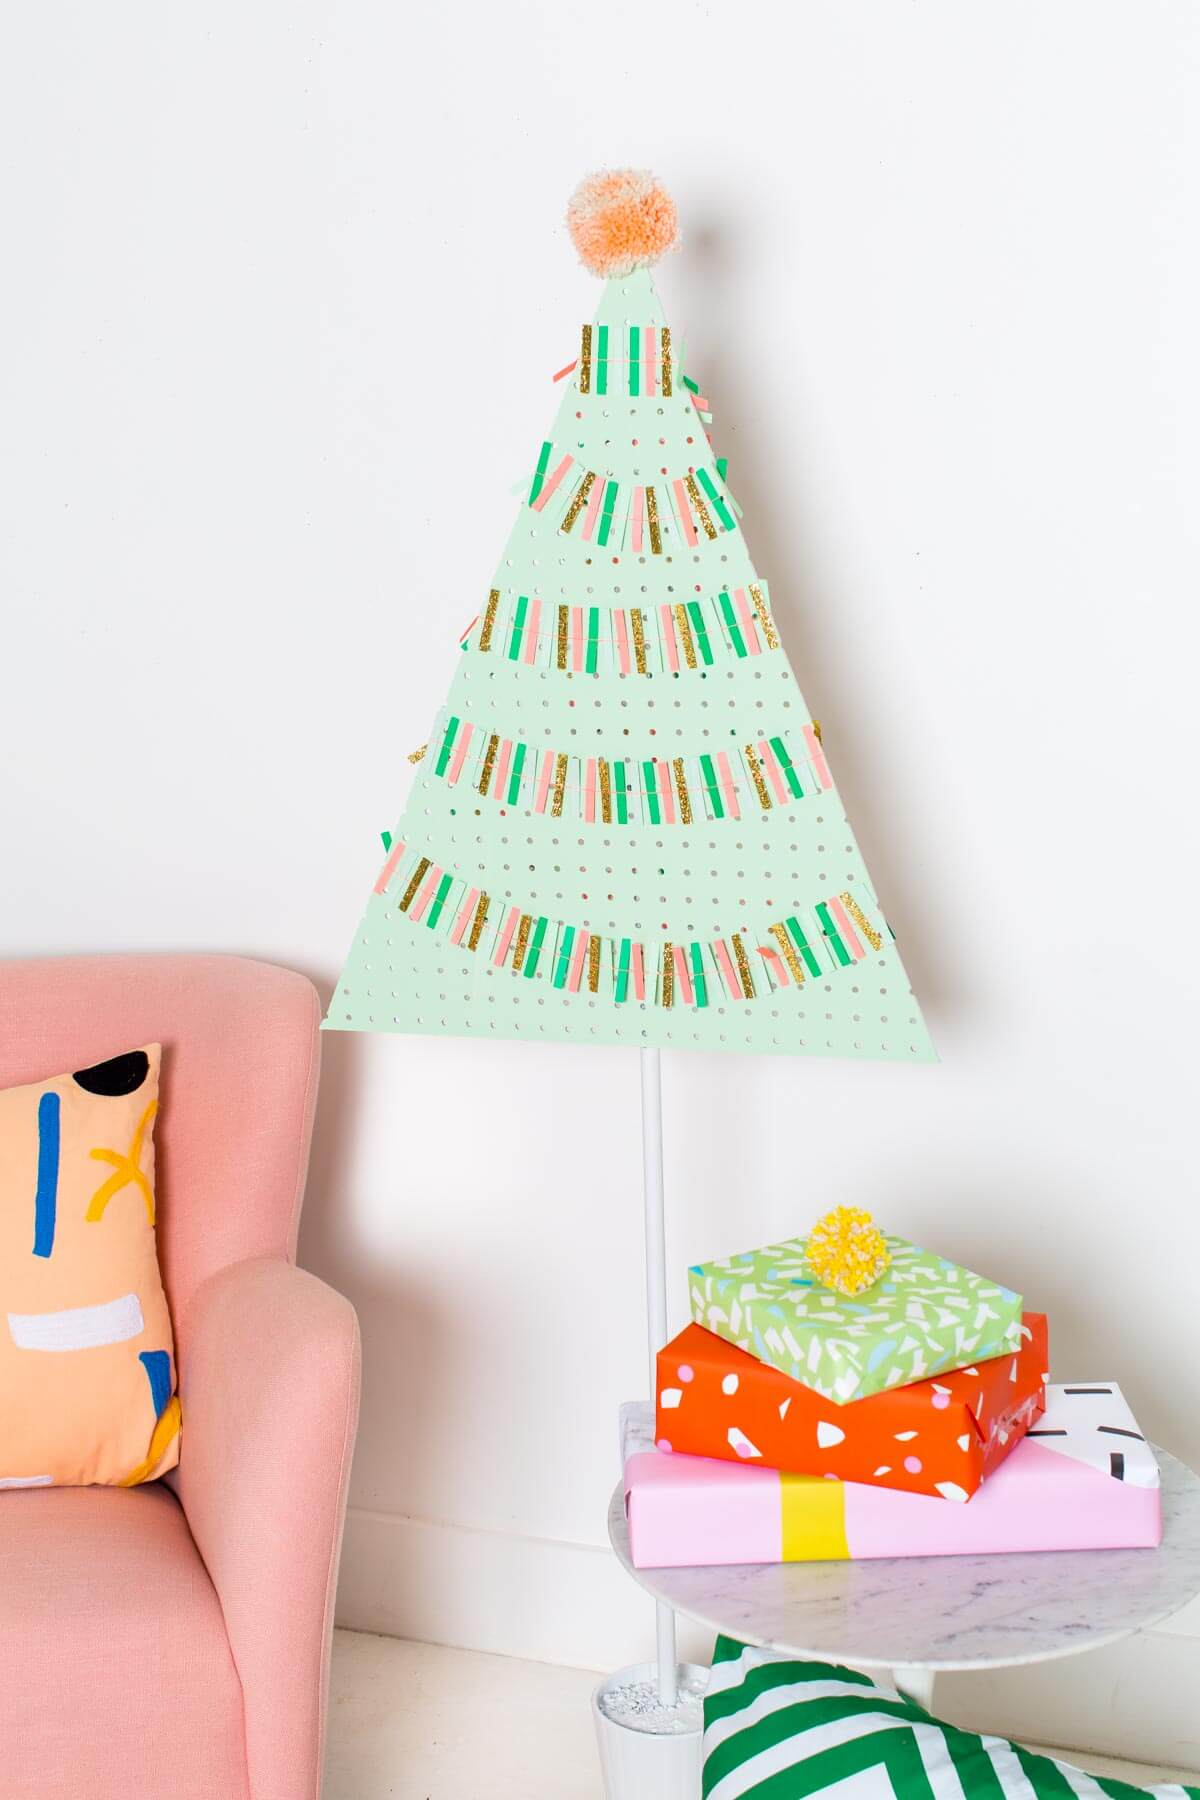 Pegboard Christmas Tree for Cards, Artwork or Ornaments